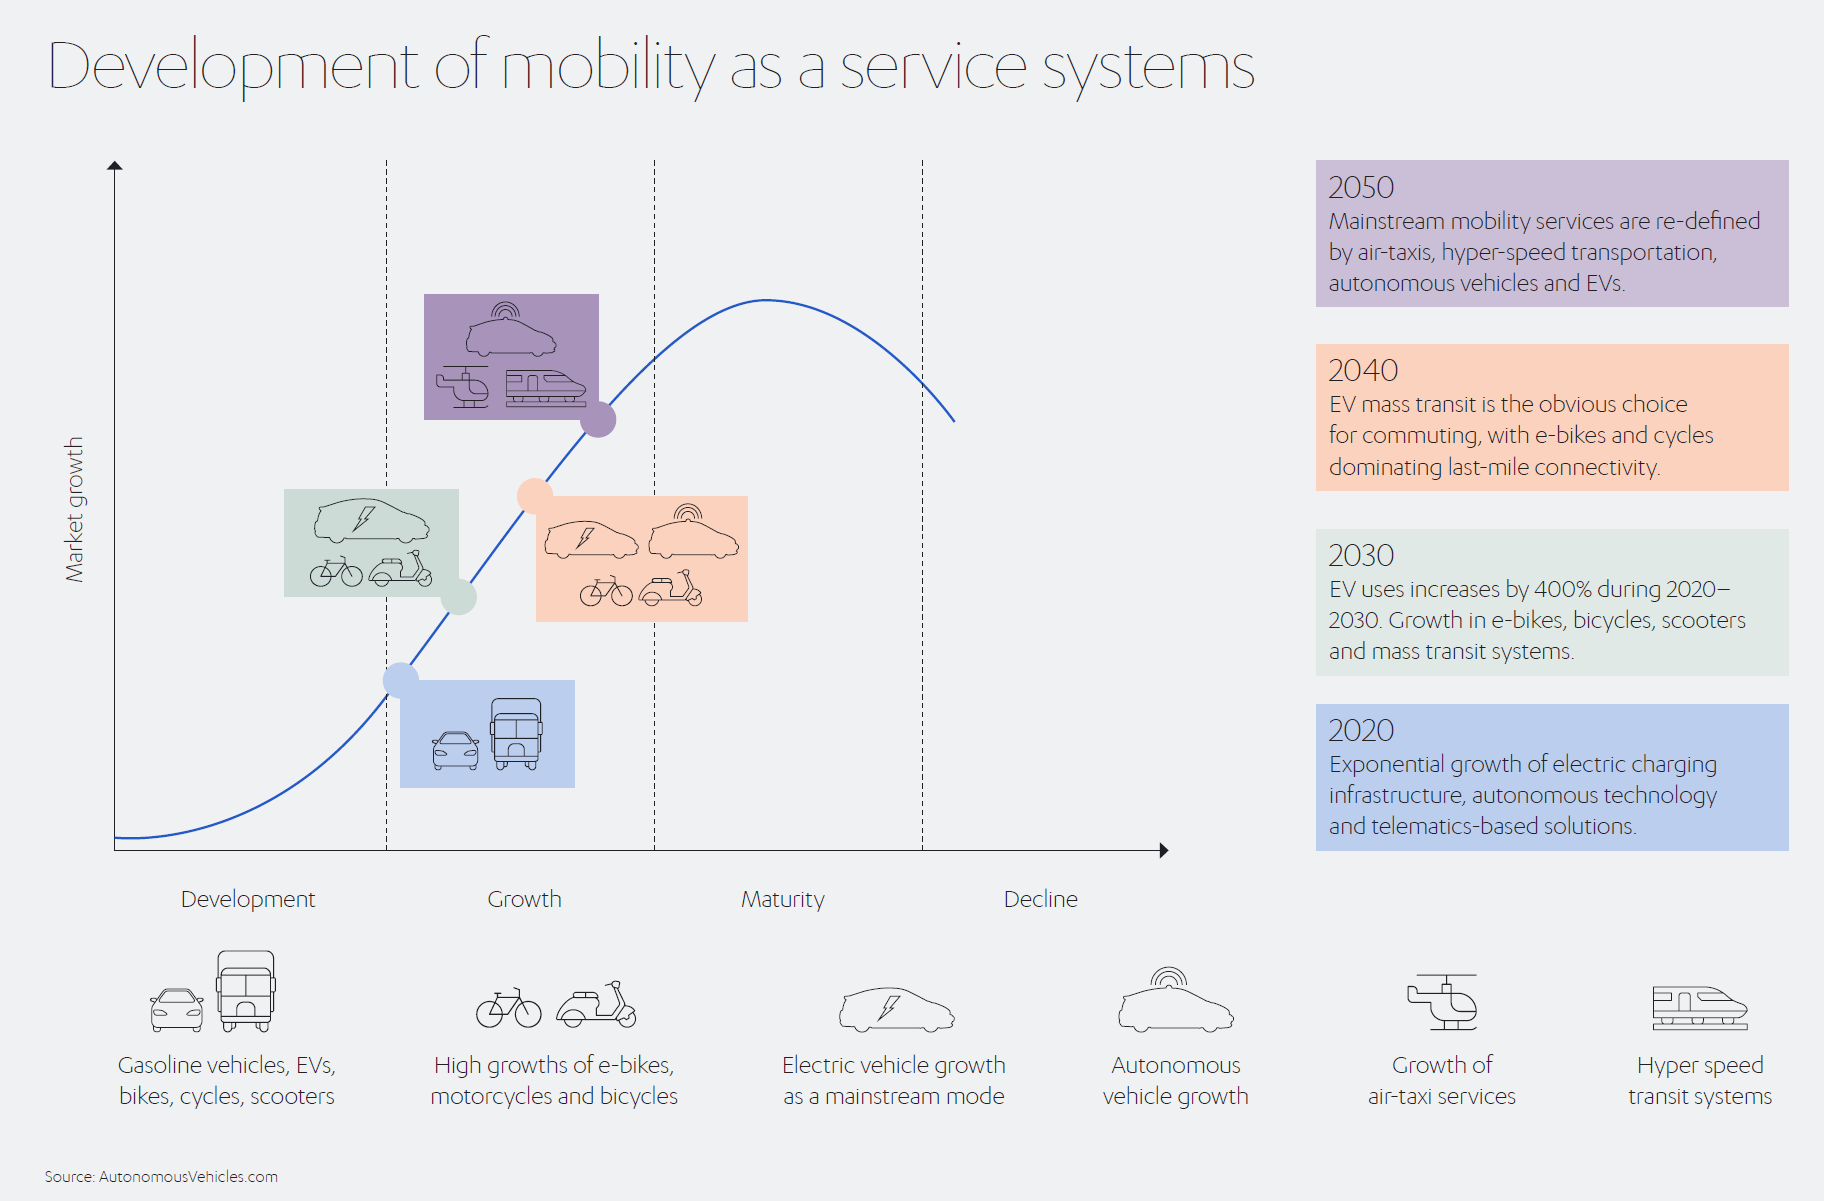 Development of Mobility as a Service Systems